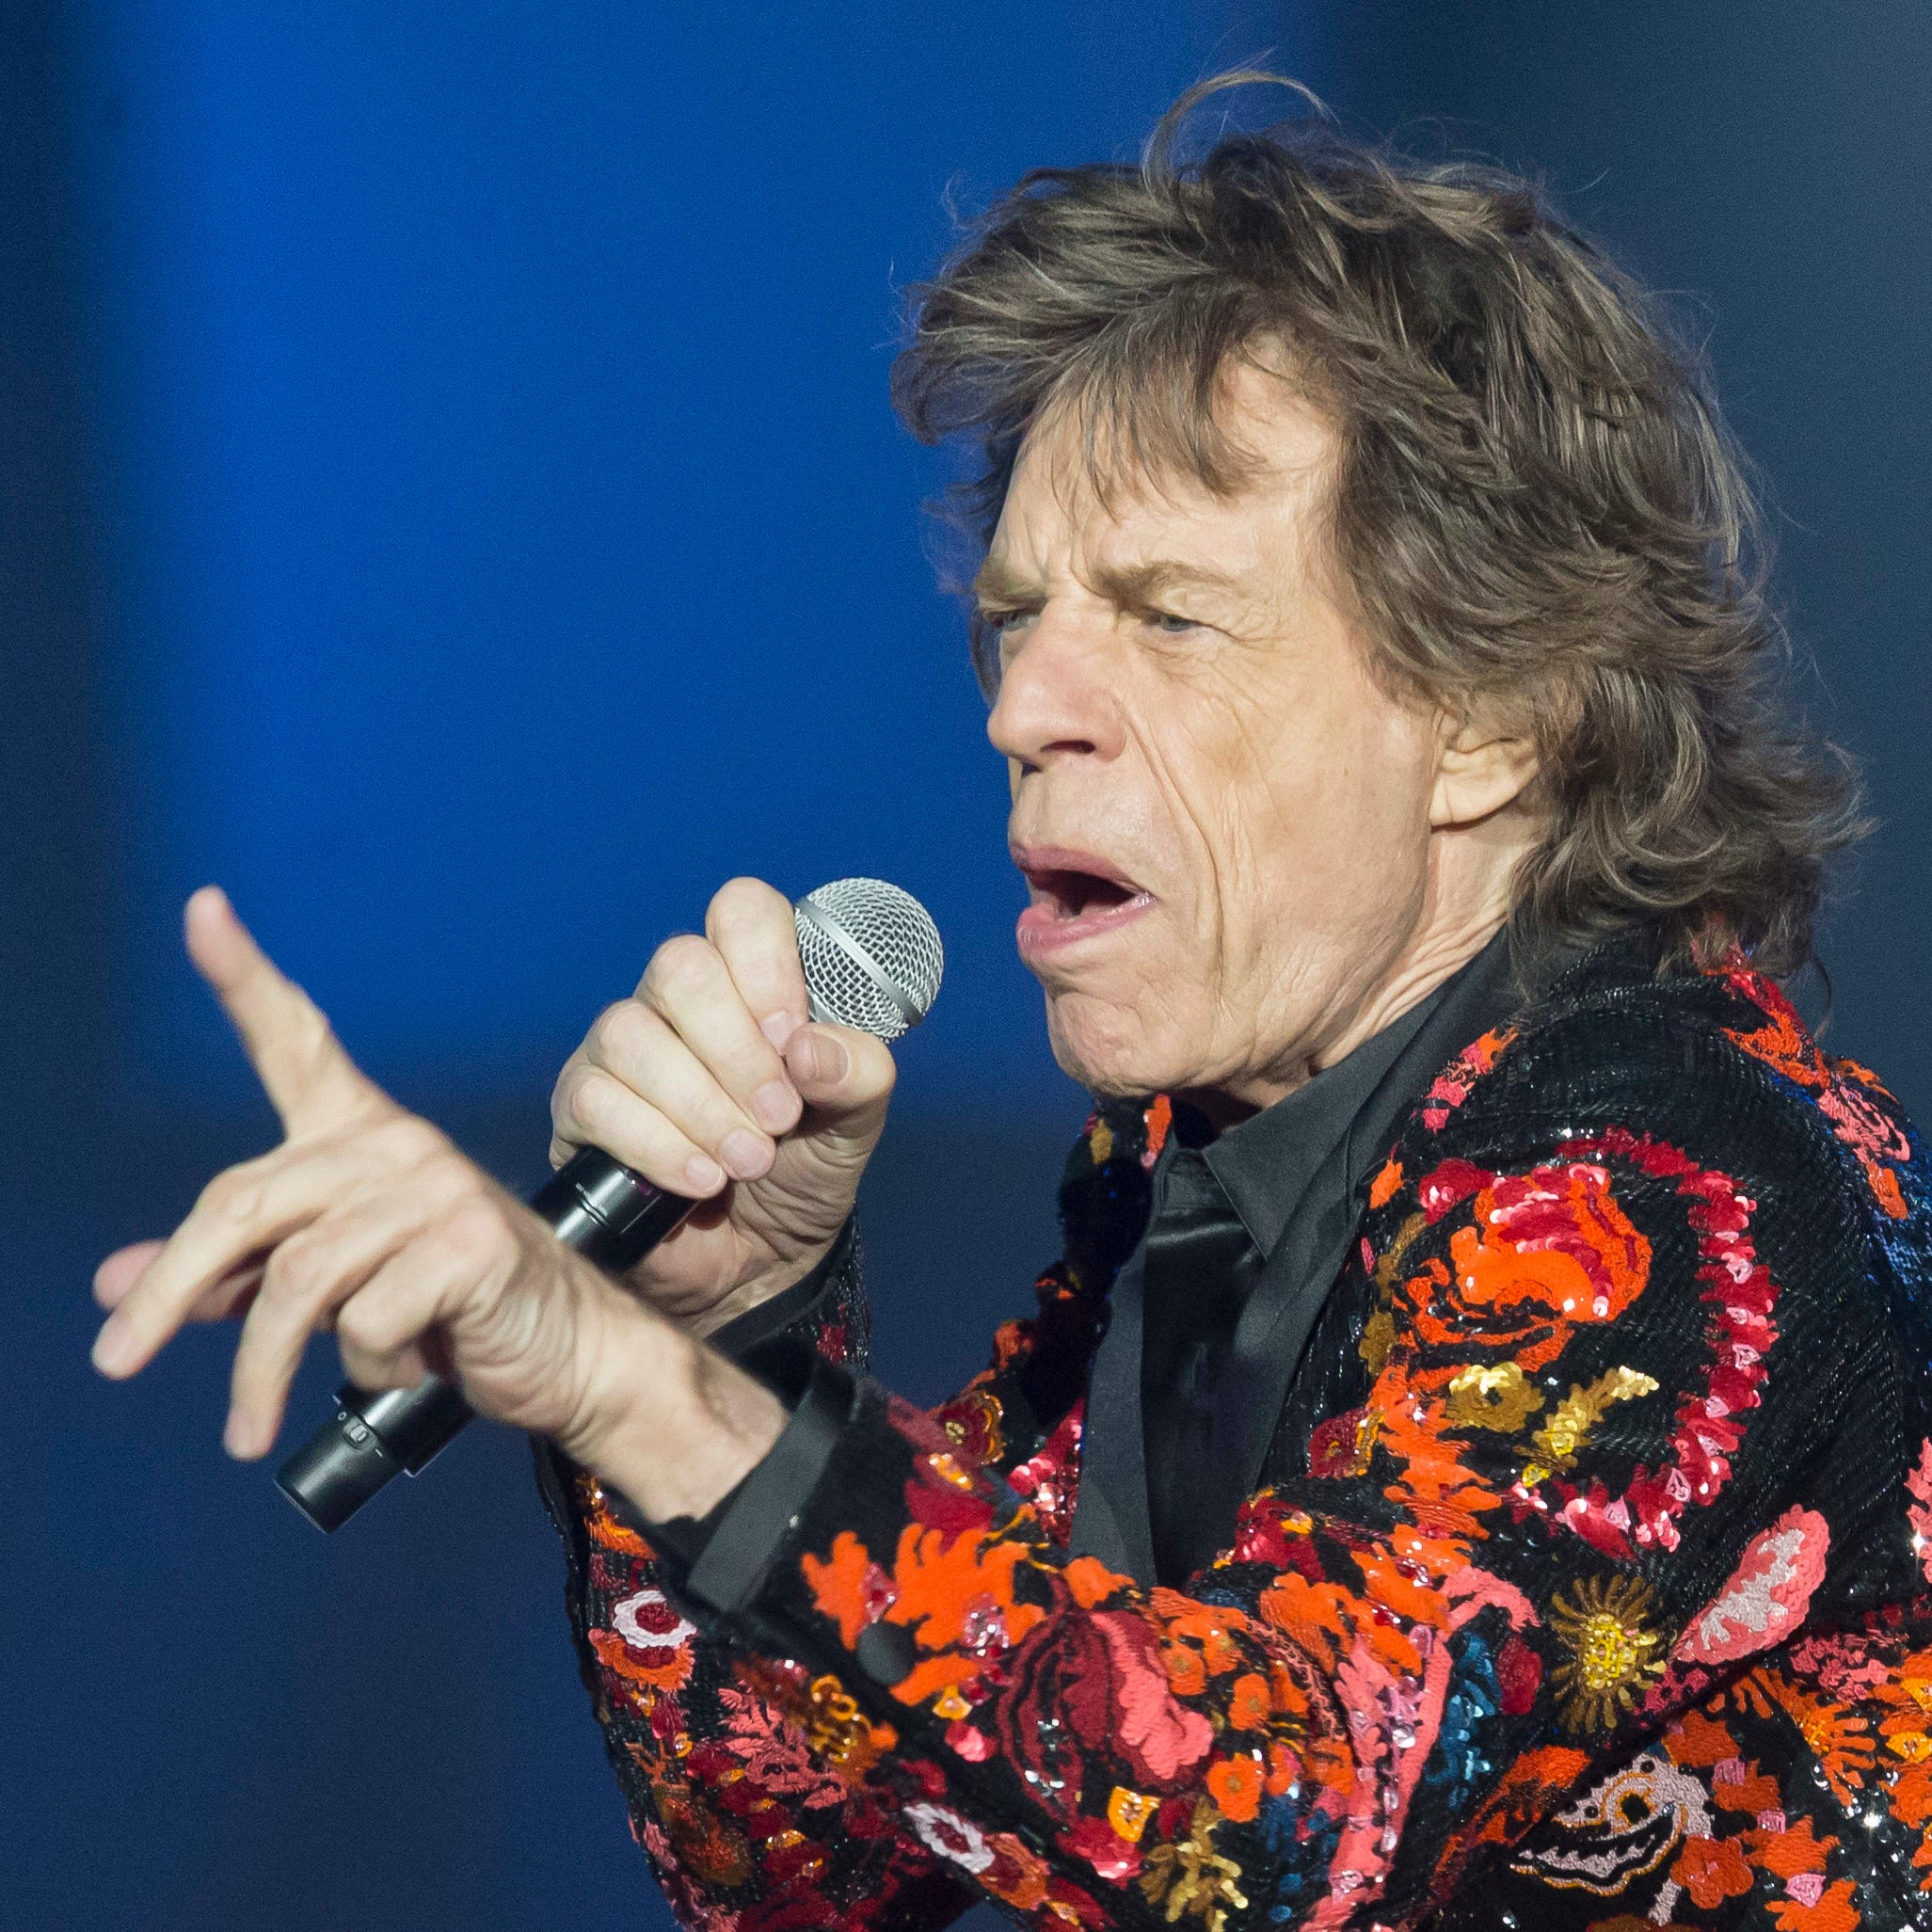 Rolling Stones set new Jersey, Philly dates for No Filter tour: Ticket info